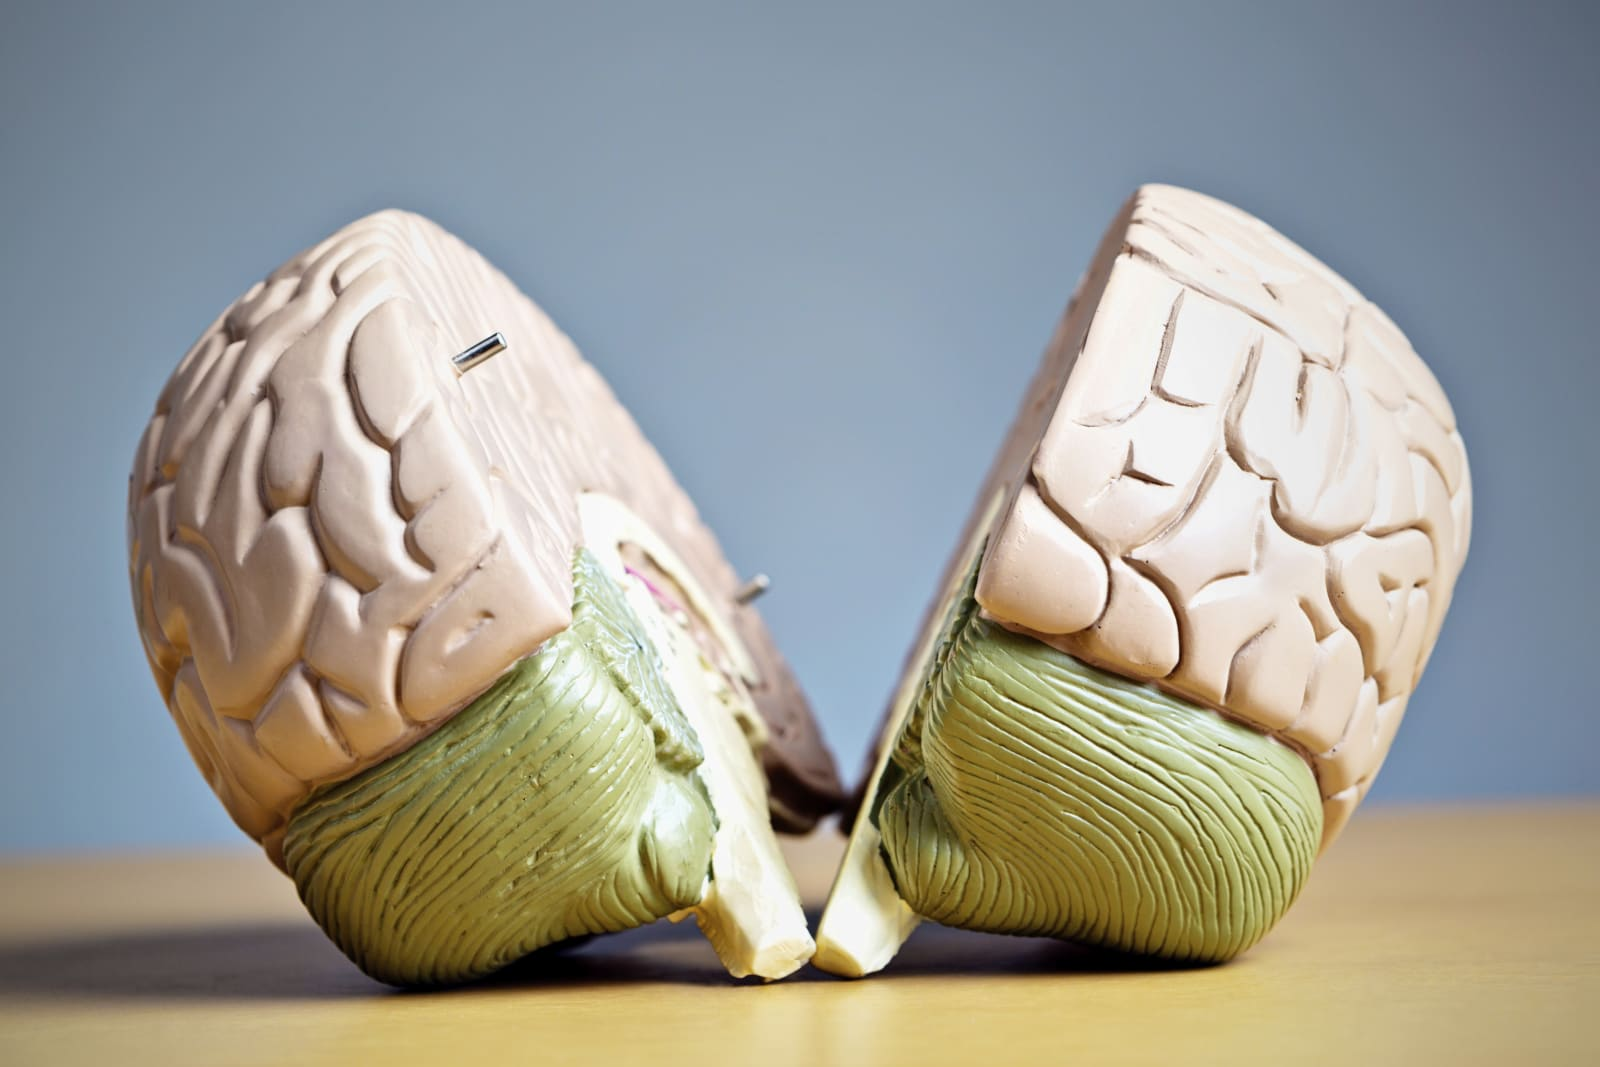 The two halves of a medical model of a human brain. Metaphor for indecision or mental illness.